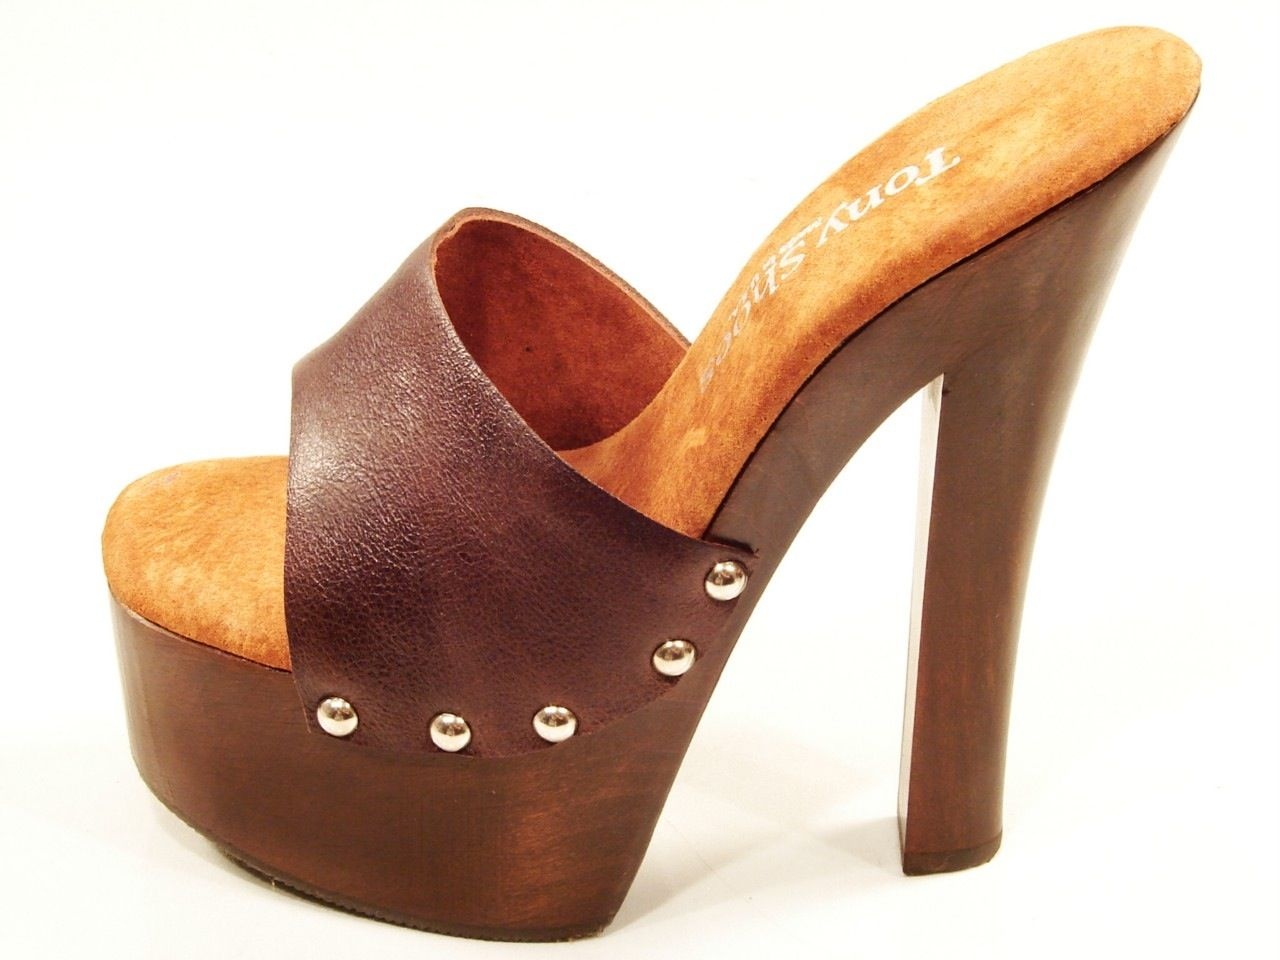 ba31ae45110d8f TONY SHOES CANDY BROWN HIGH HEEL WOOD PLATFORM SLIP ON MULES SANDALS CLOGS.